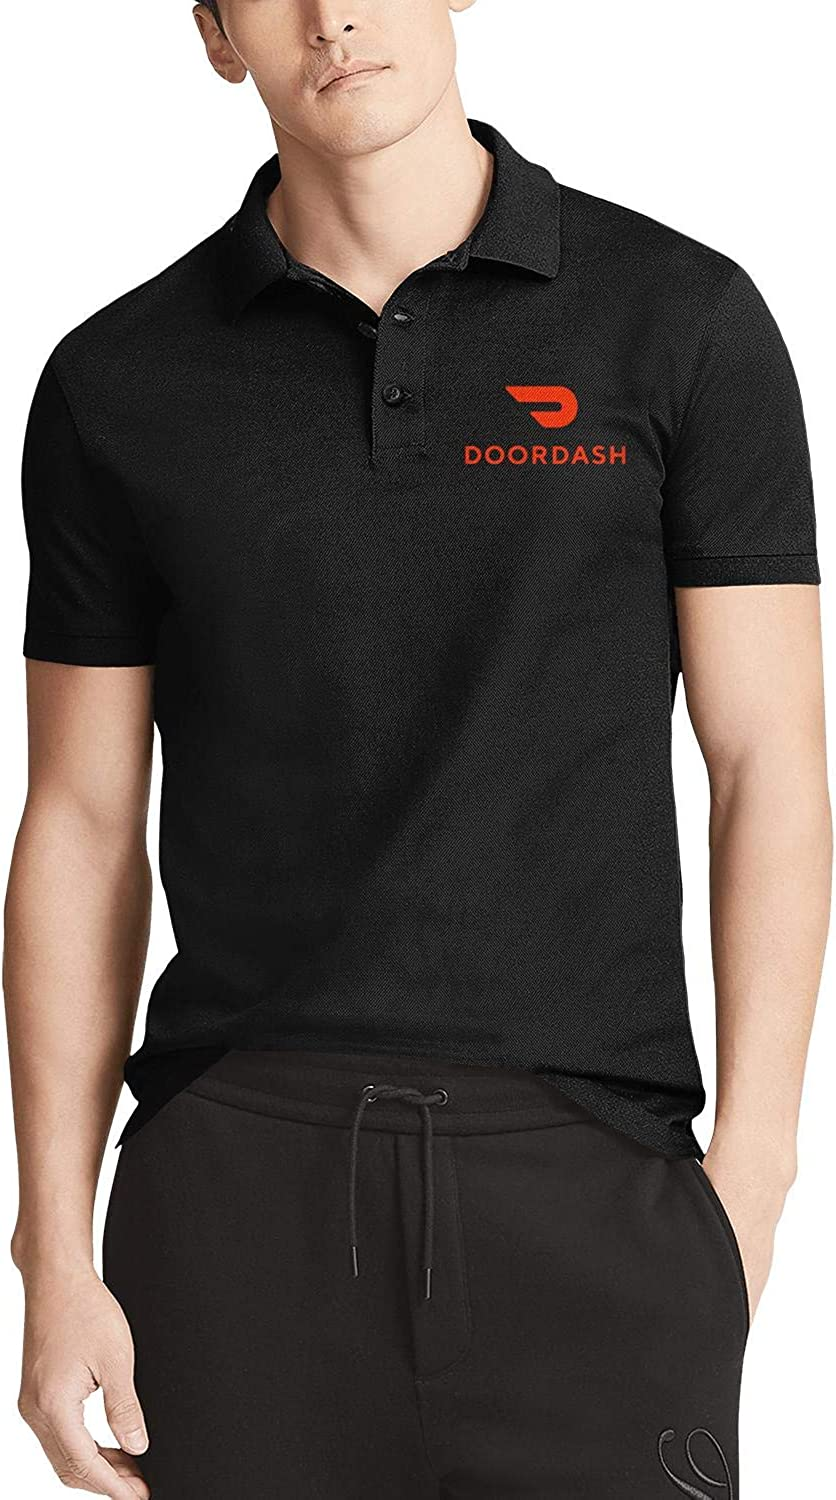 Mens Casual Polo T Shirts Personalised Crazy Doordash-Order-Food-Online-red- Fashion Work Uniform Urban